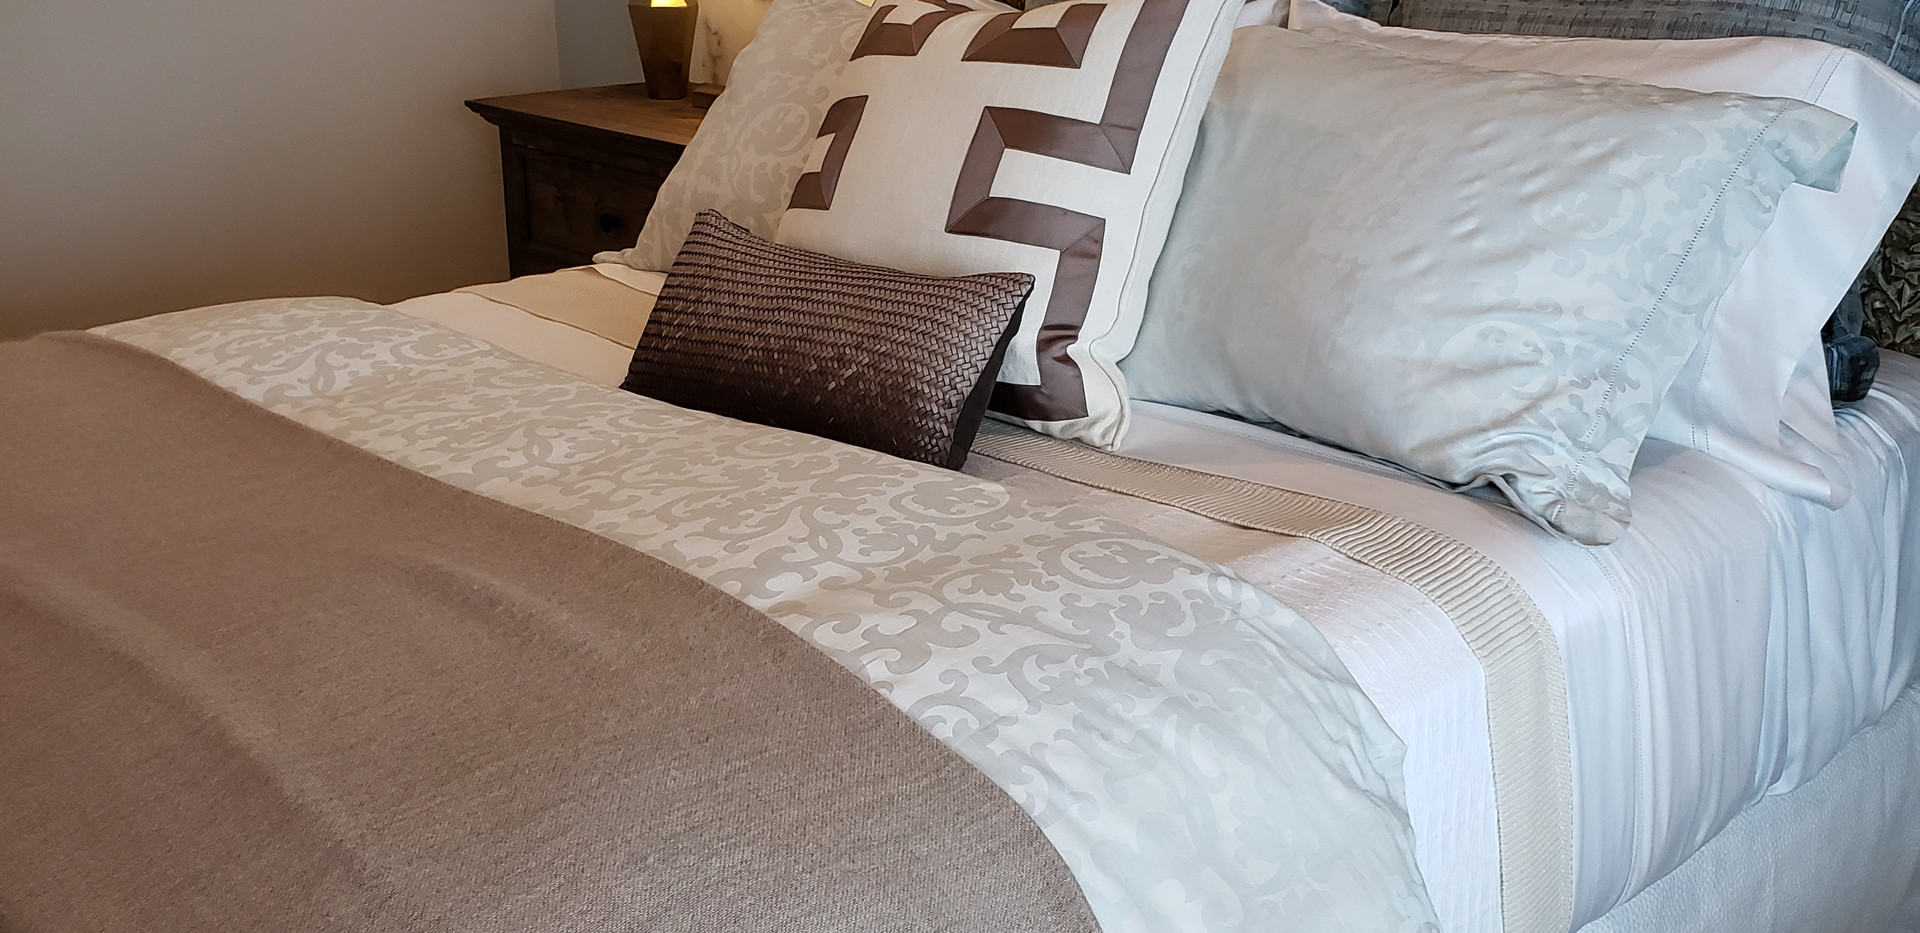 Parade of Homes Austin - Guest Room